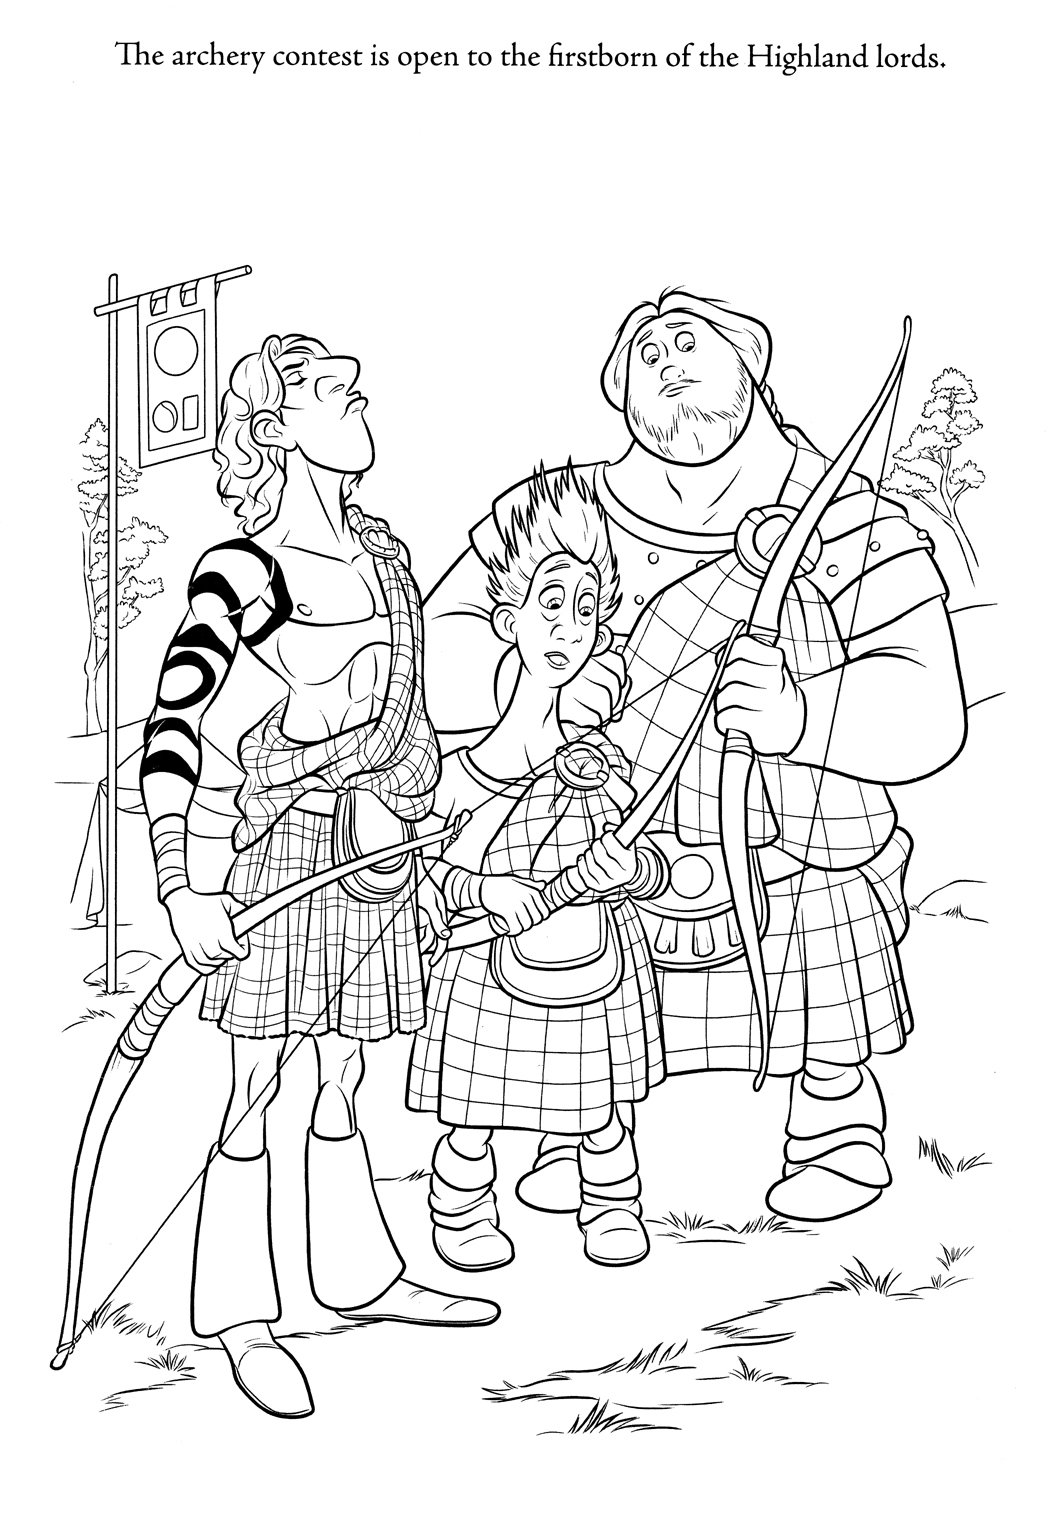 colouring pages to print free fall coloring pages for adults best coloring pages for kids pages to colouring print free